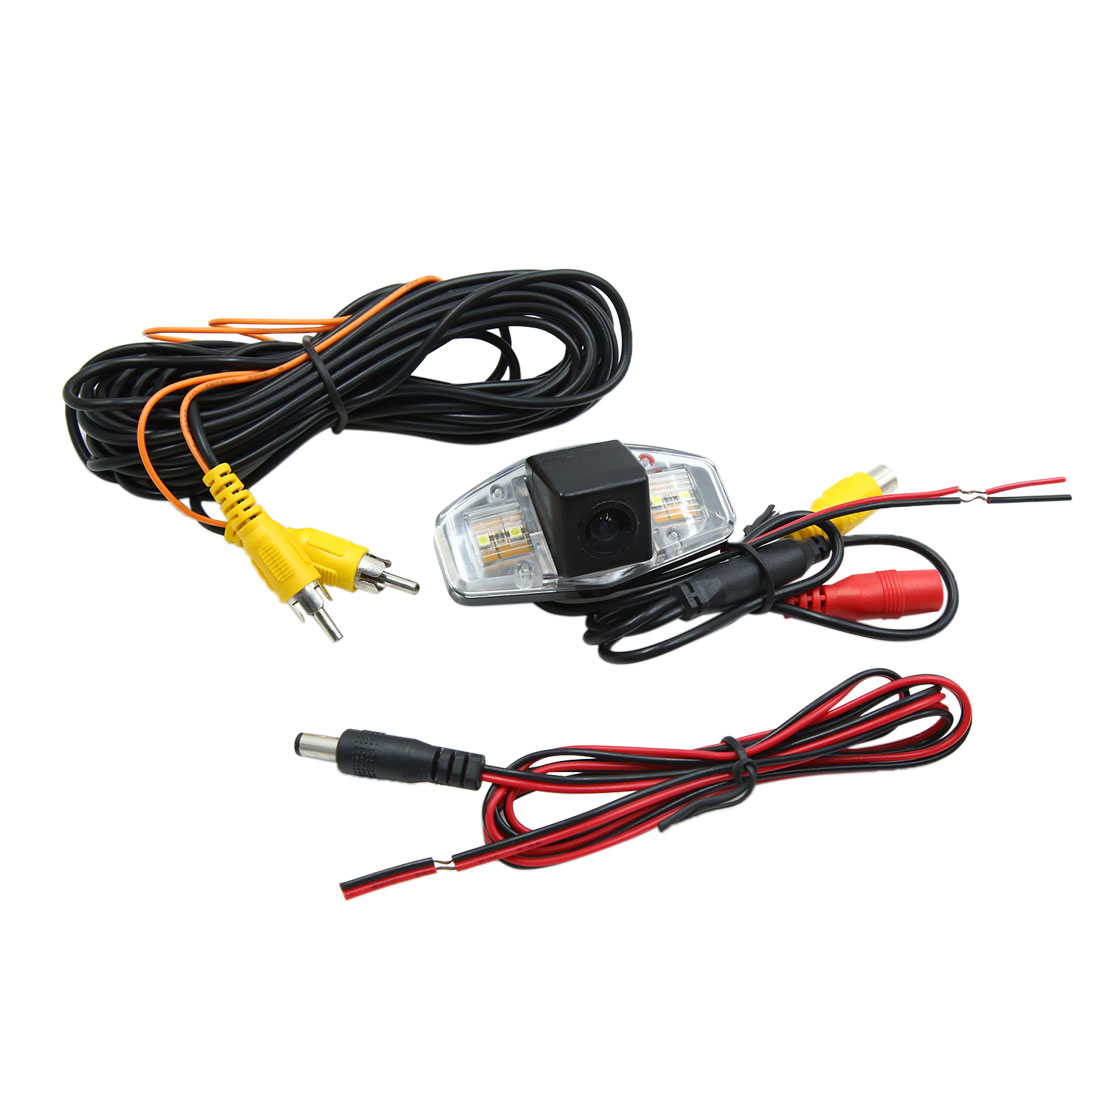 DC 9-16V HD CCD Car Rear View Camera Recorder with LED Light for Honda Accord - image 4 de 4